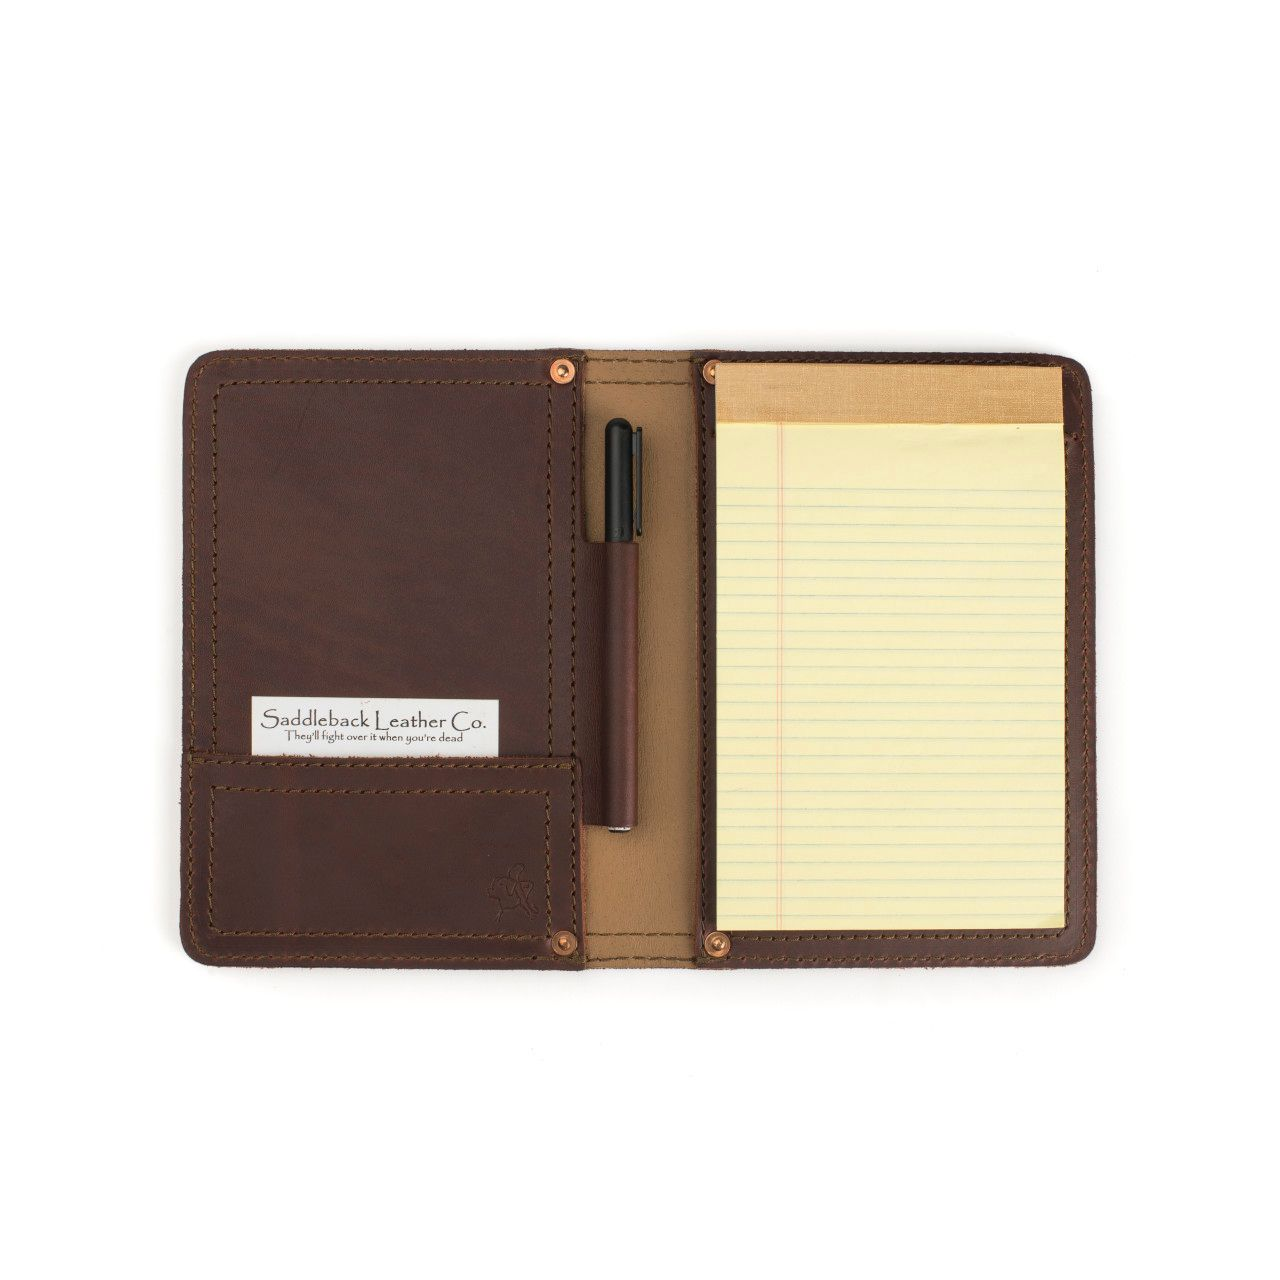 Notepad in leather notepad cover small in chestnut leather